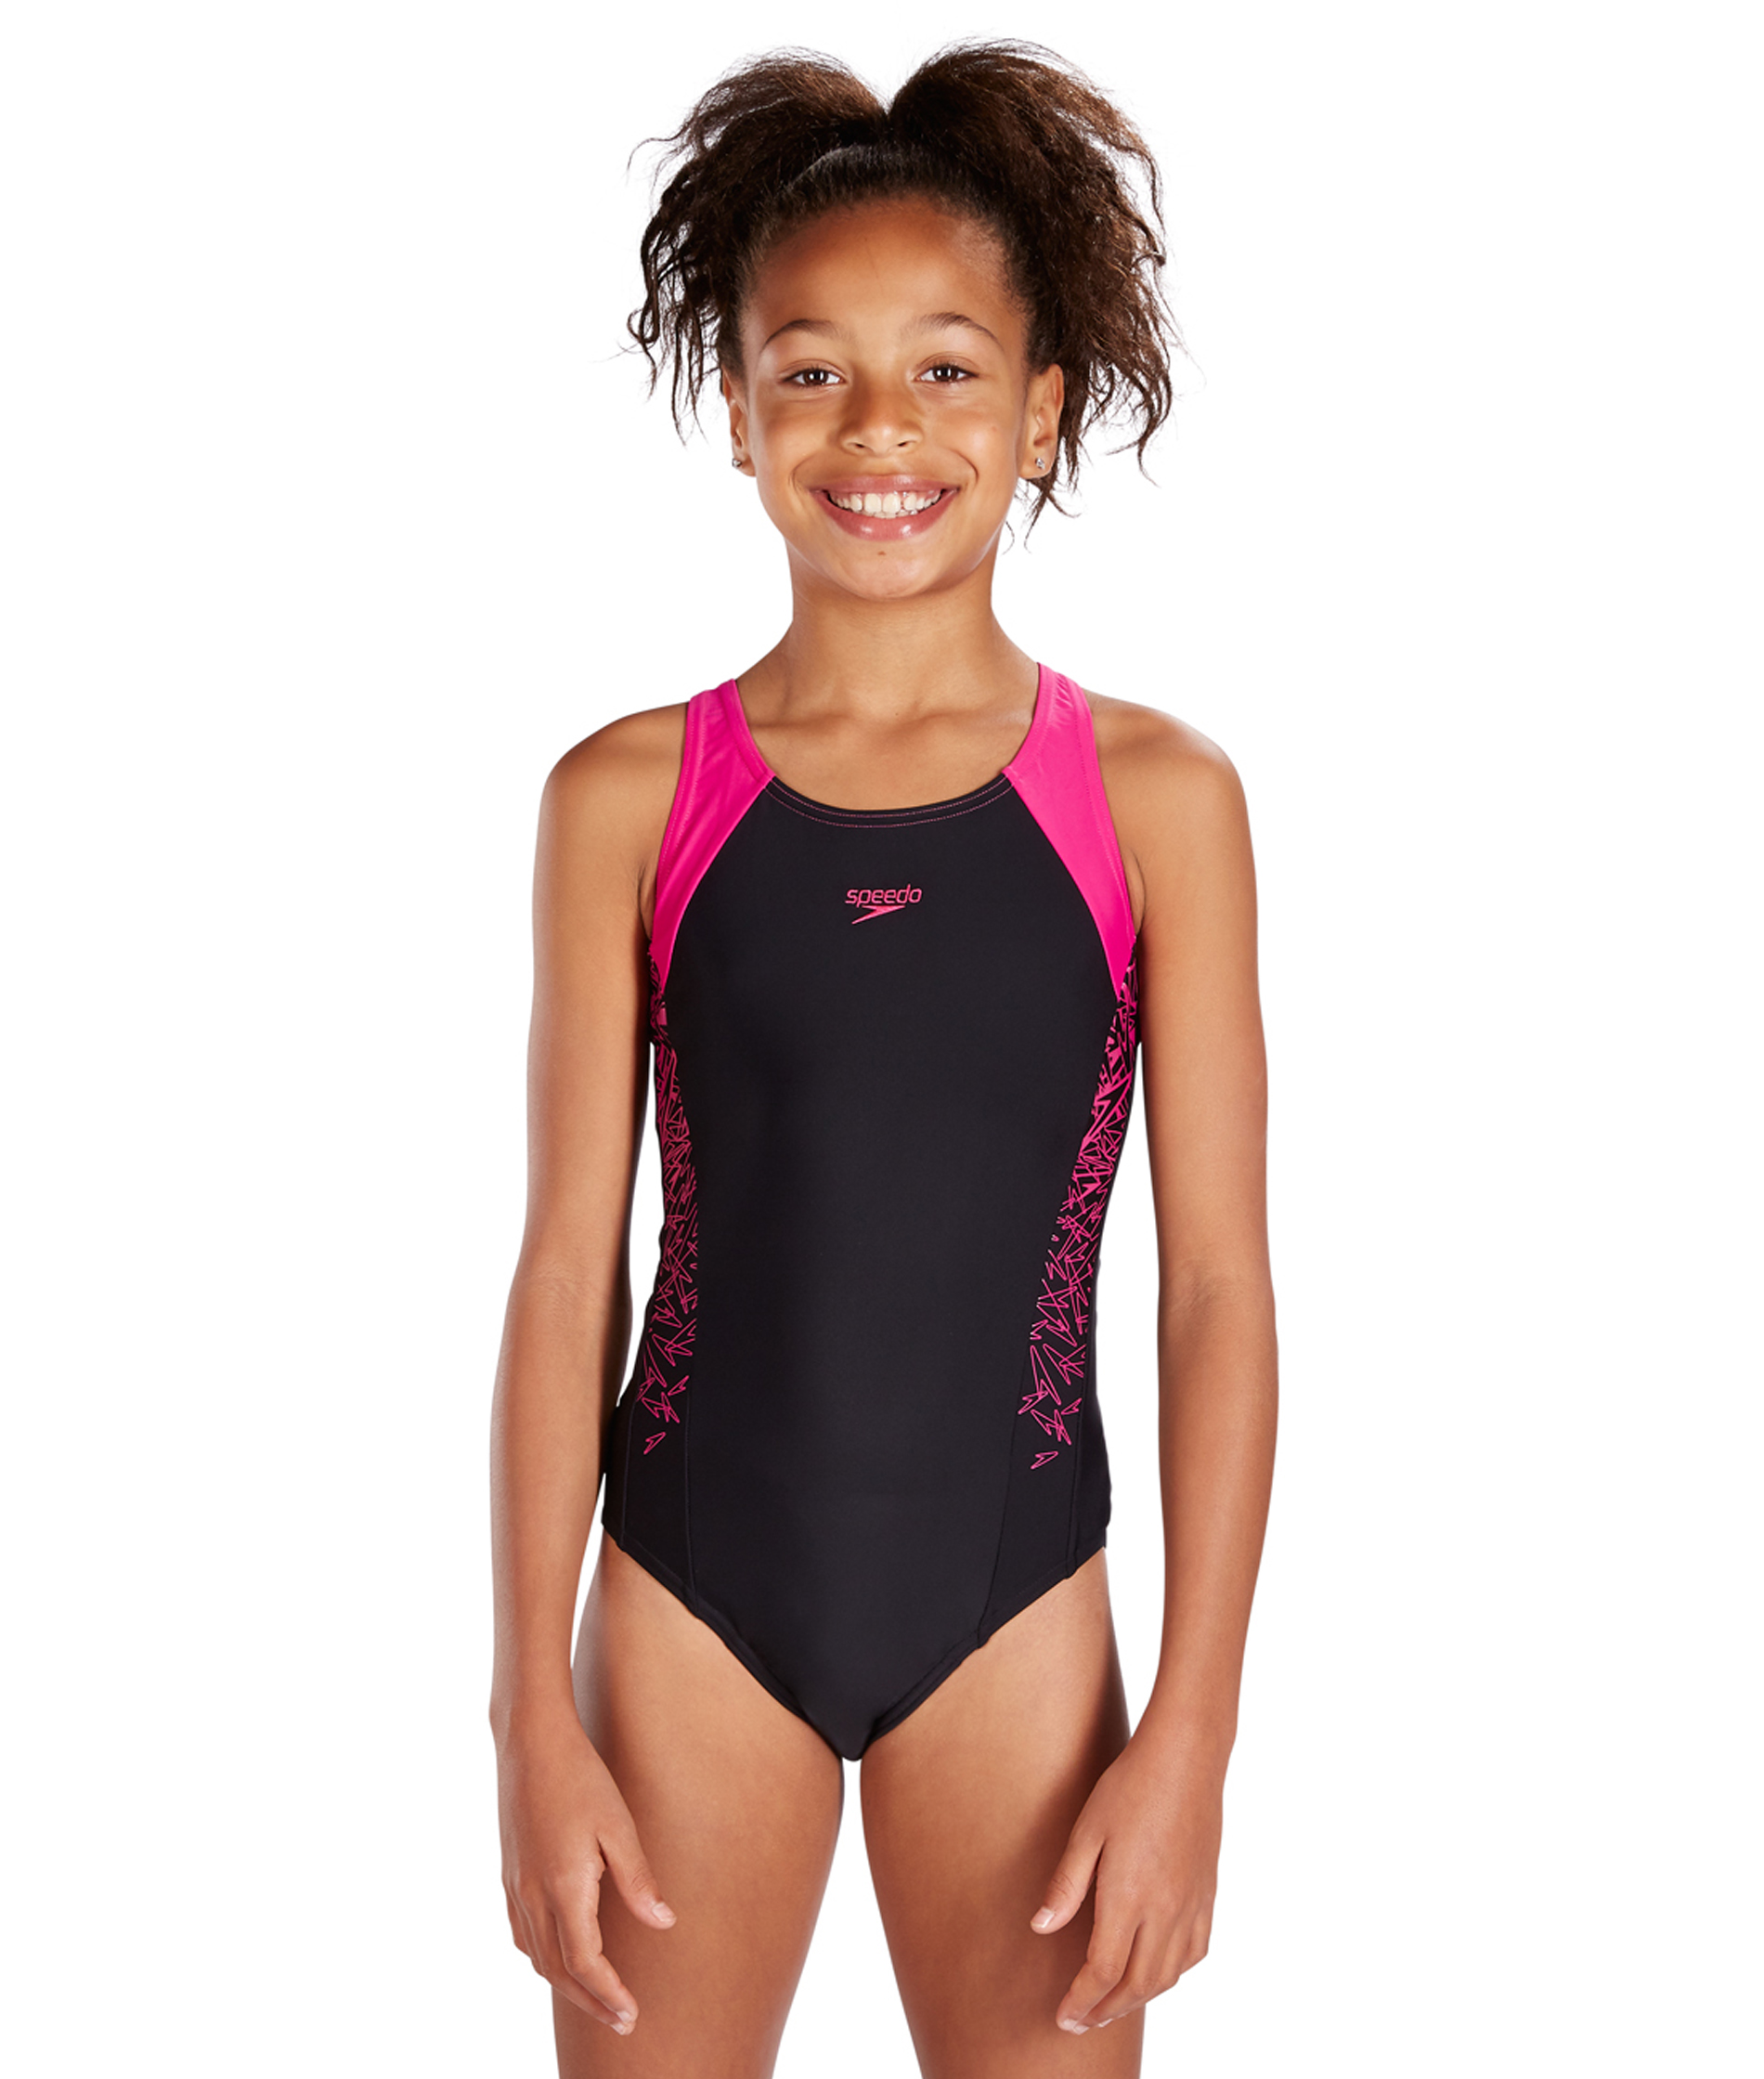 4b4f44eec90b5 Speedo Girls Boom Splice Muscleback Swimsuit - Black/Pink